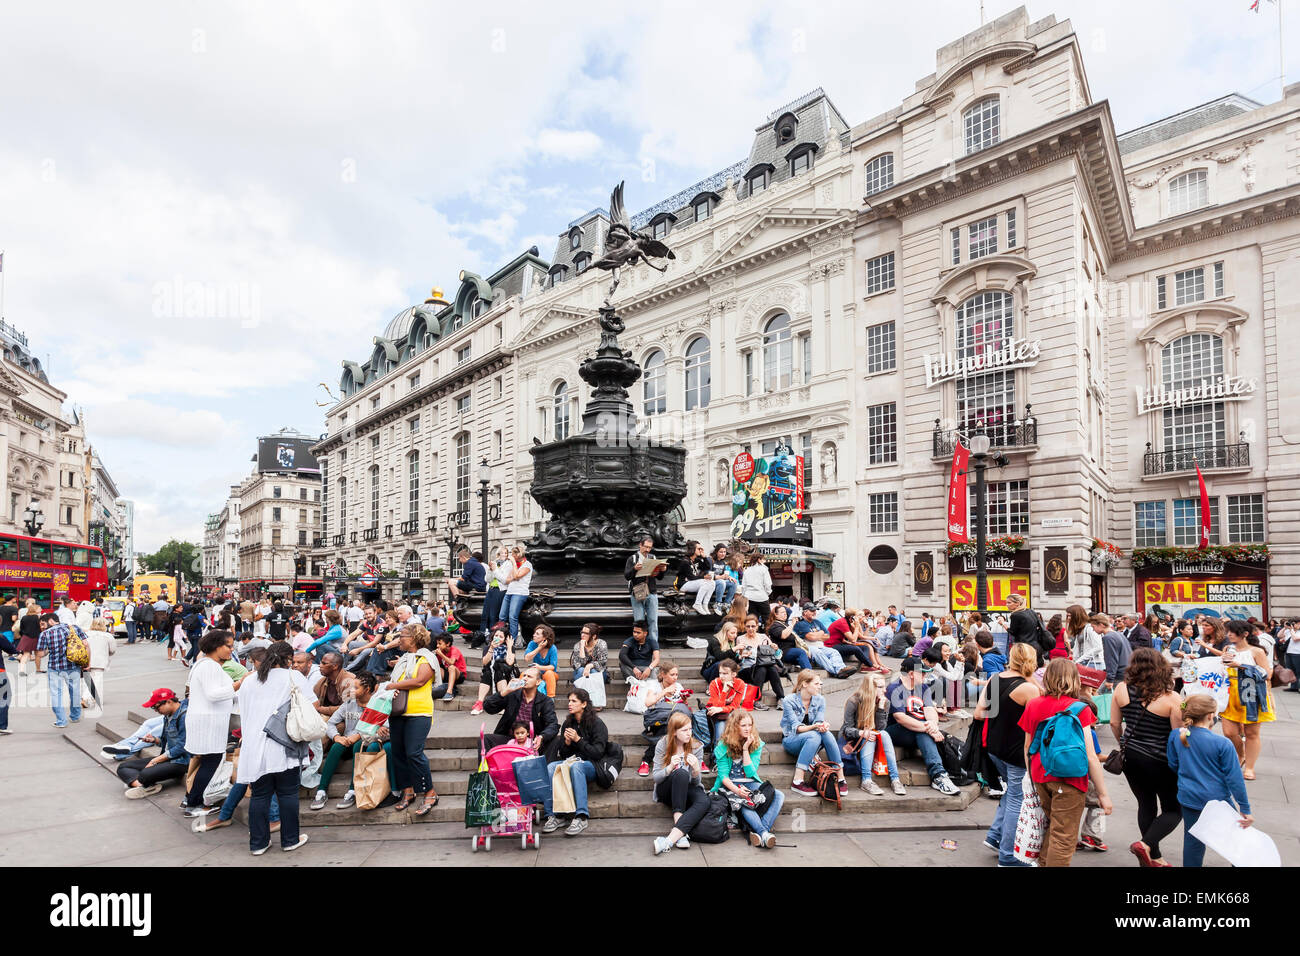 Piccadilly Circus, Londres, Angleterre, Royaume-Uni Photo Stock